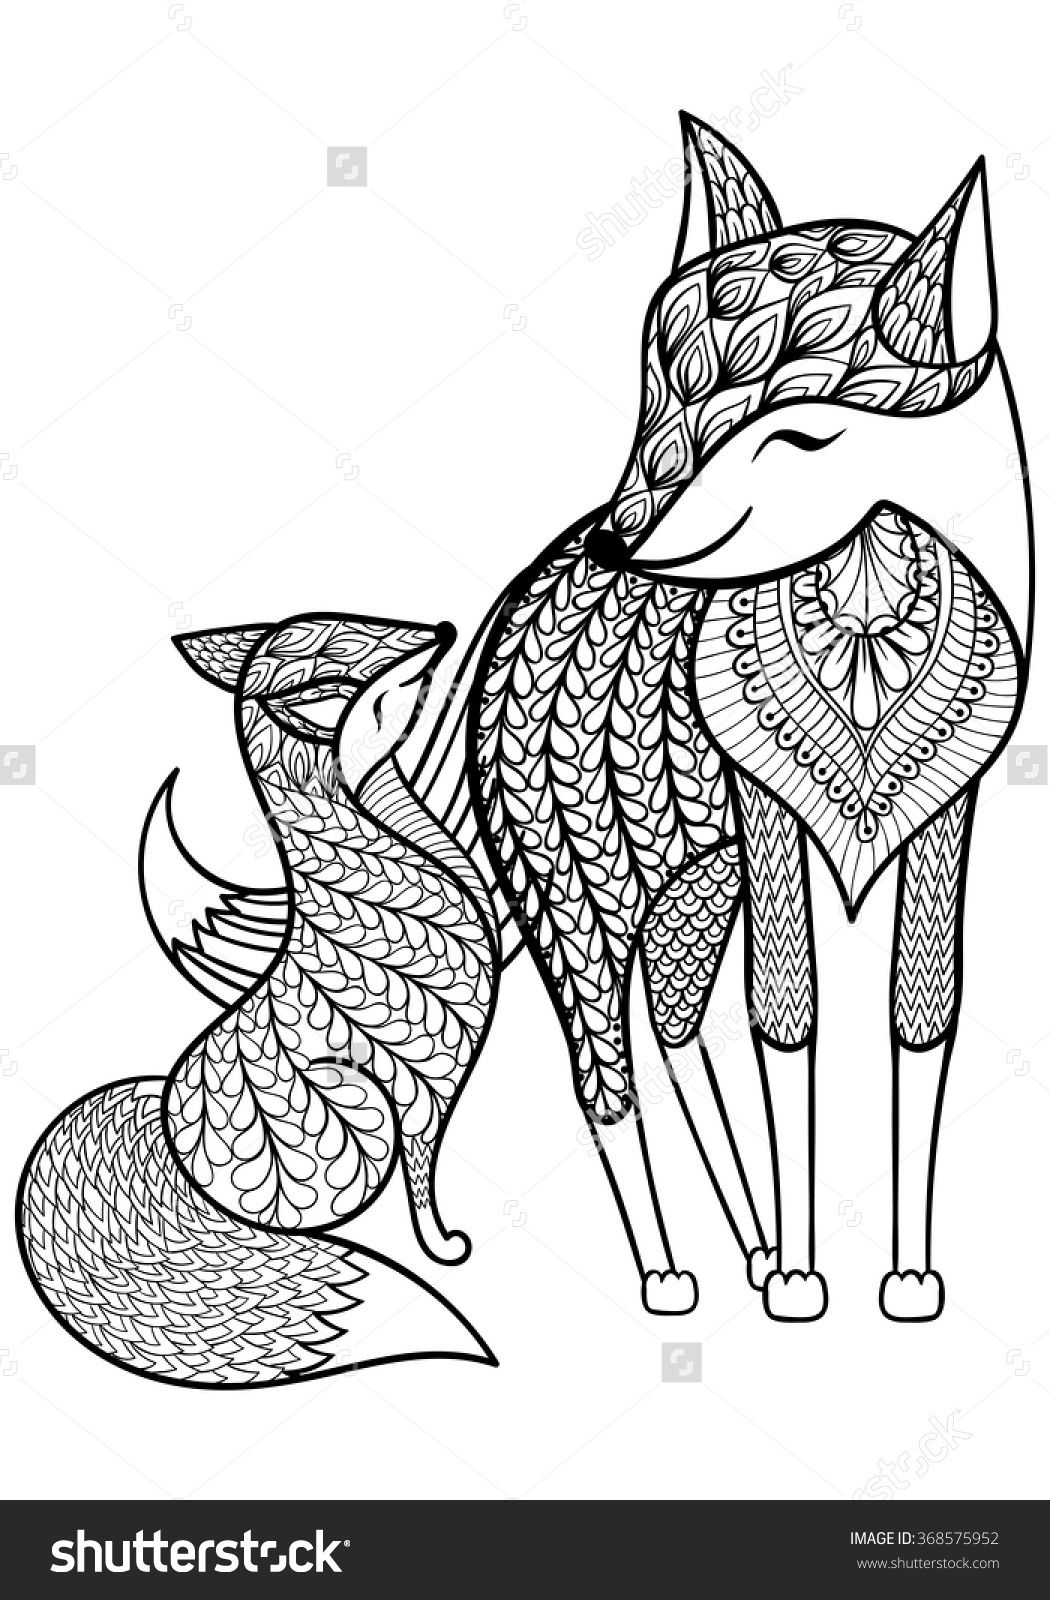 Free coloring pages for young adults - Royalty Free Hand Drawn Fox With Young Child Pattern 368575952